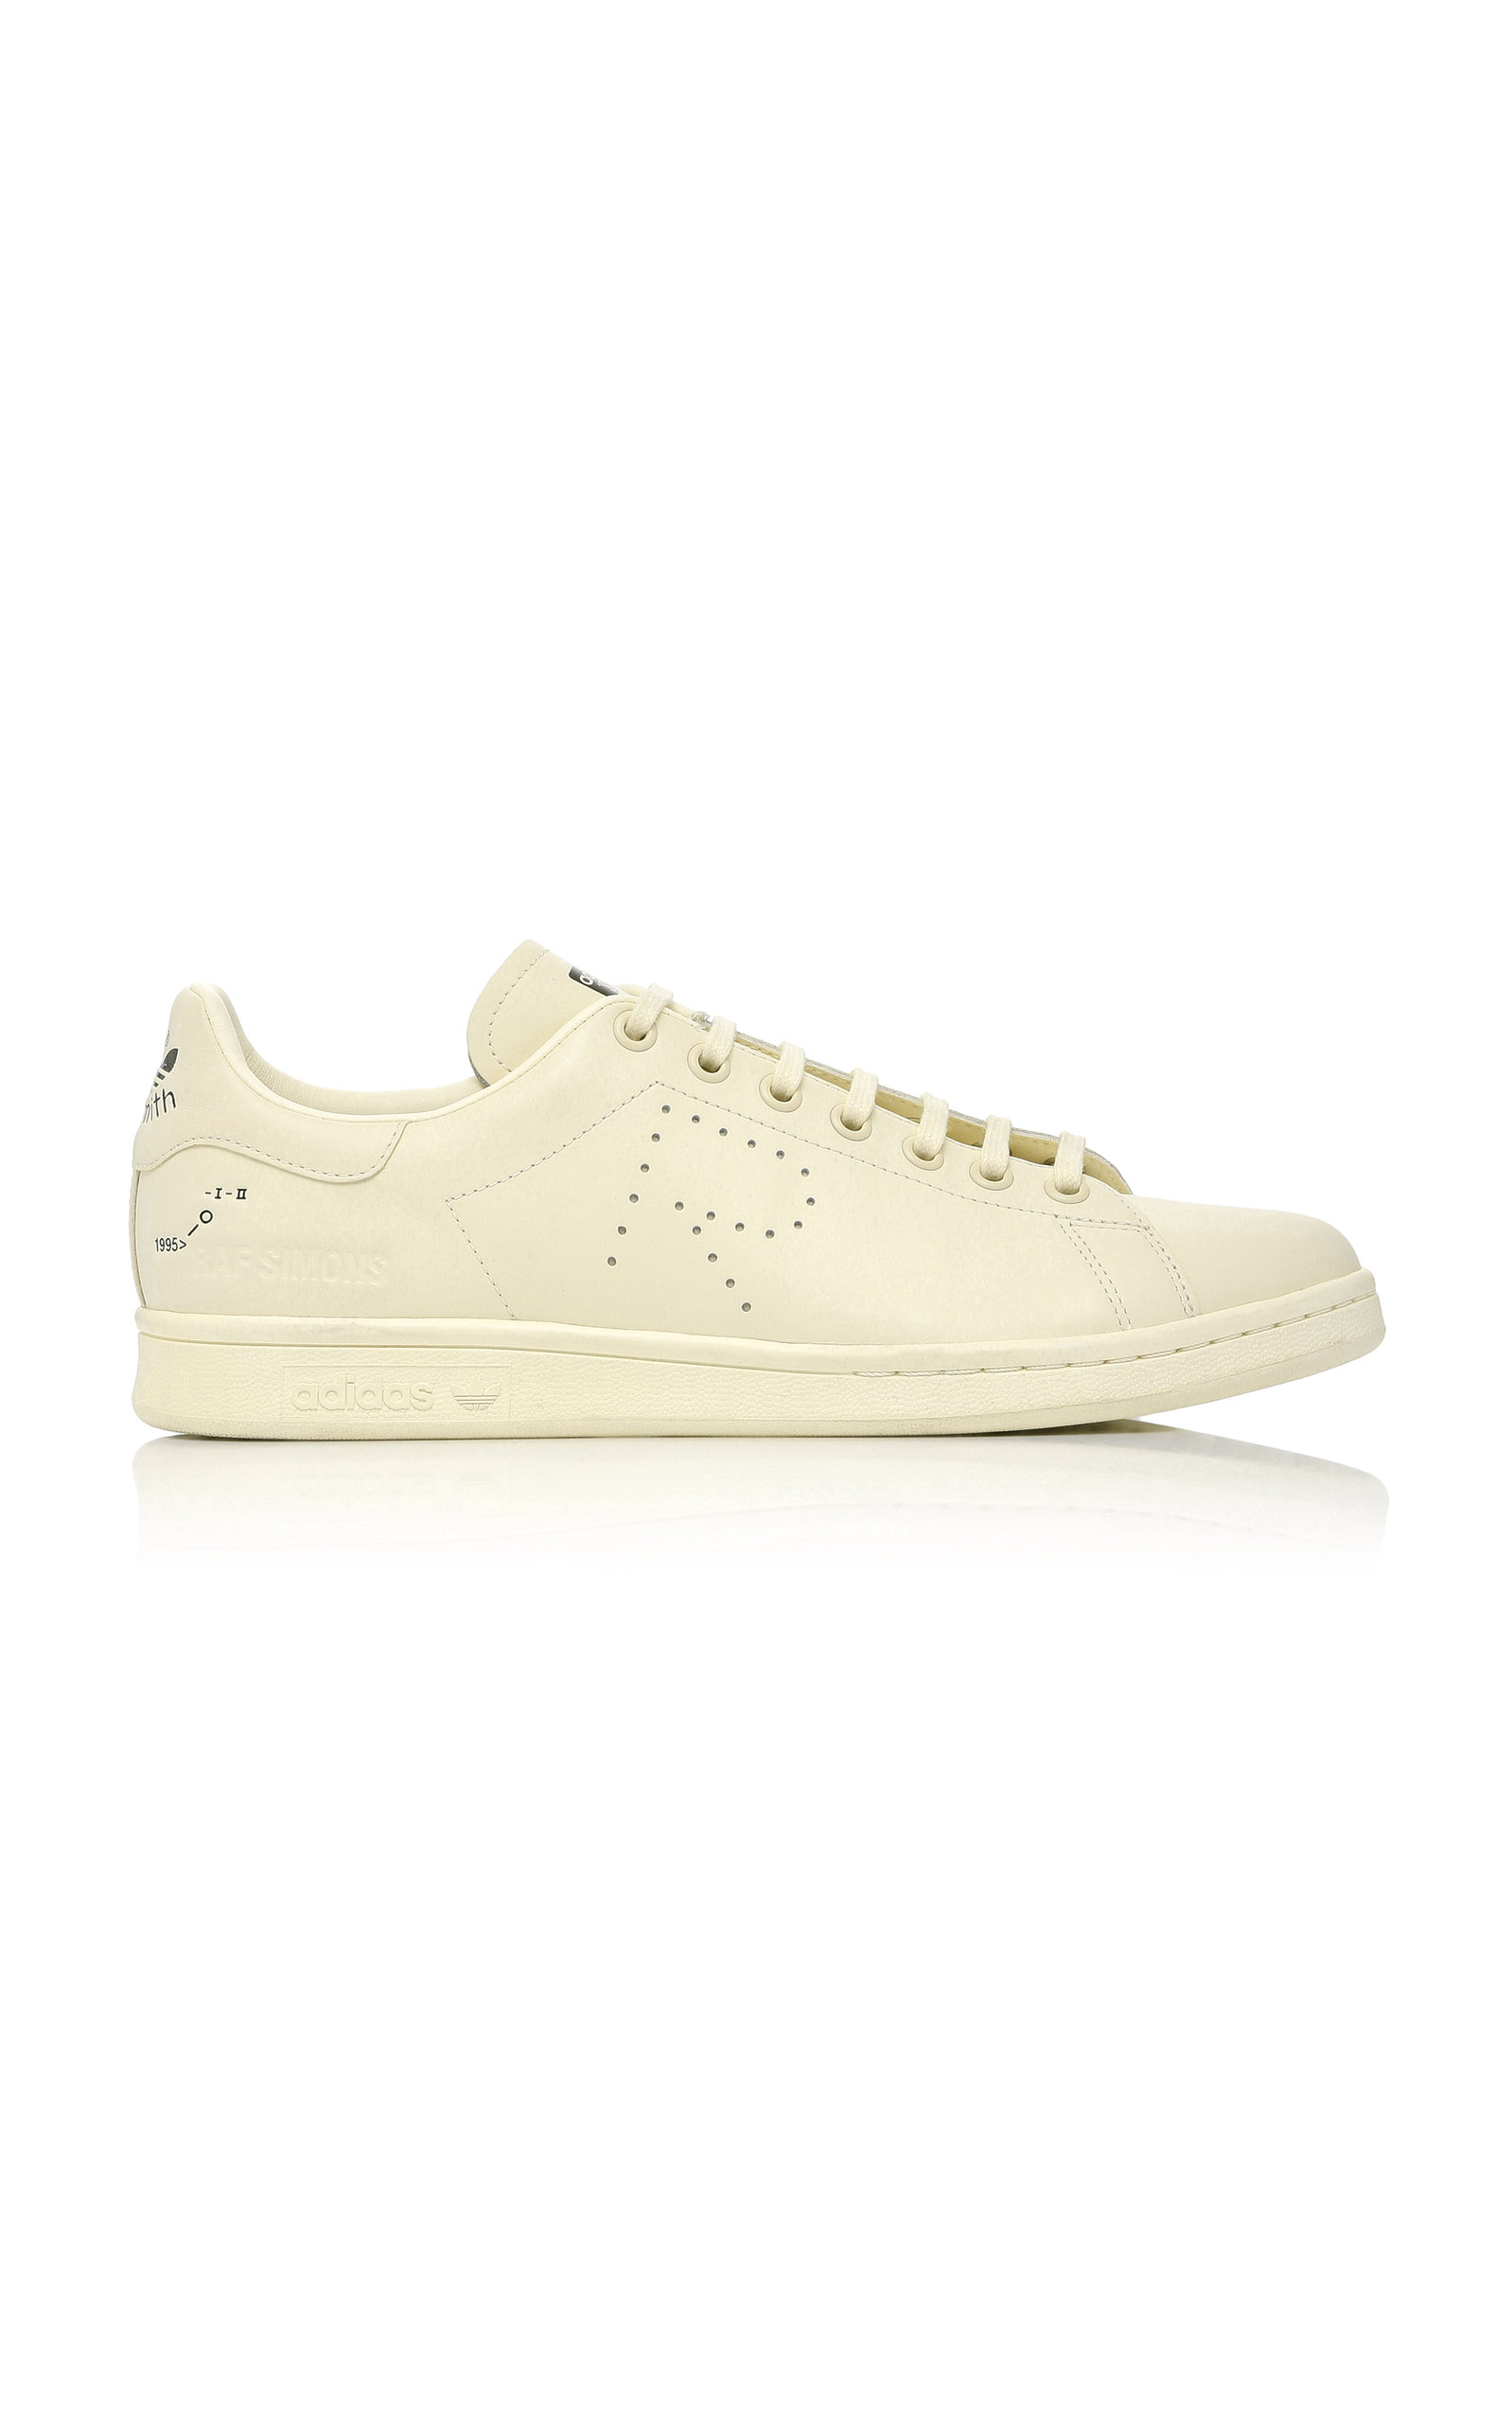 info for a4f1e 0a4b8 adidas by Raf SimonsStan Smith Leather Sneakers. CLOSE. Loading